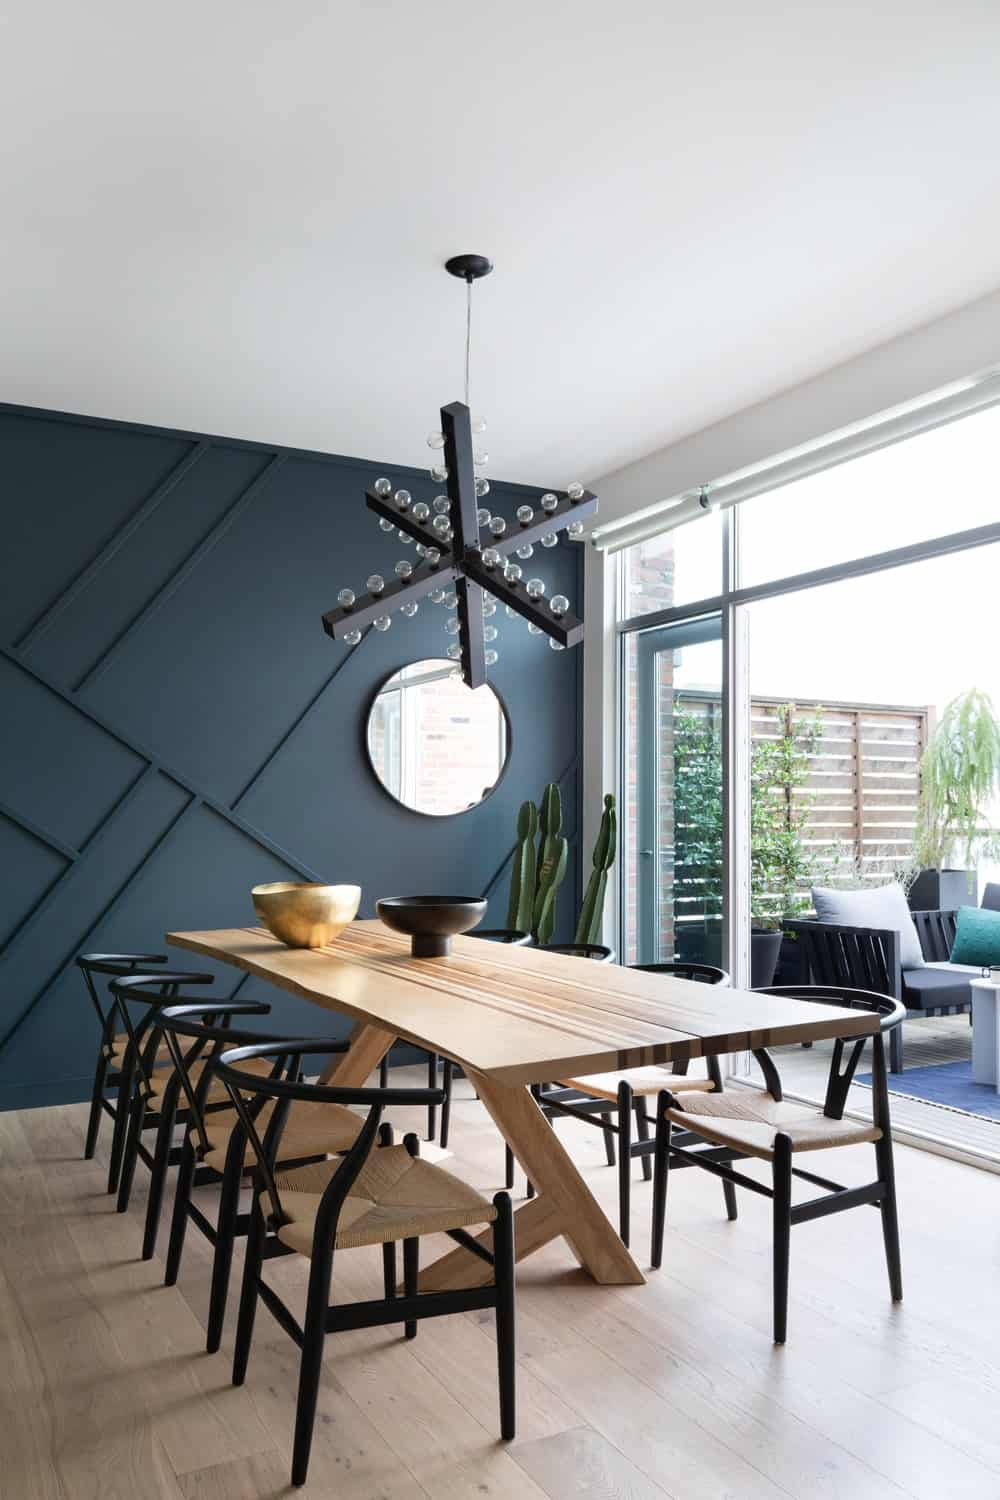 This is a simple yet charming dining room with a wooden dining table to match the hardwood flooring. This is complemented by the black wishbone chairs, black decorative modern light and the black patterned wall brightened by the white ceiling and the glass wall.